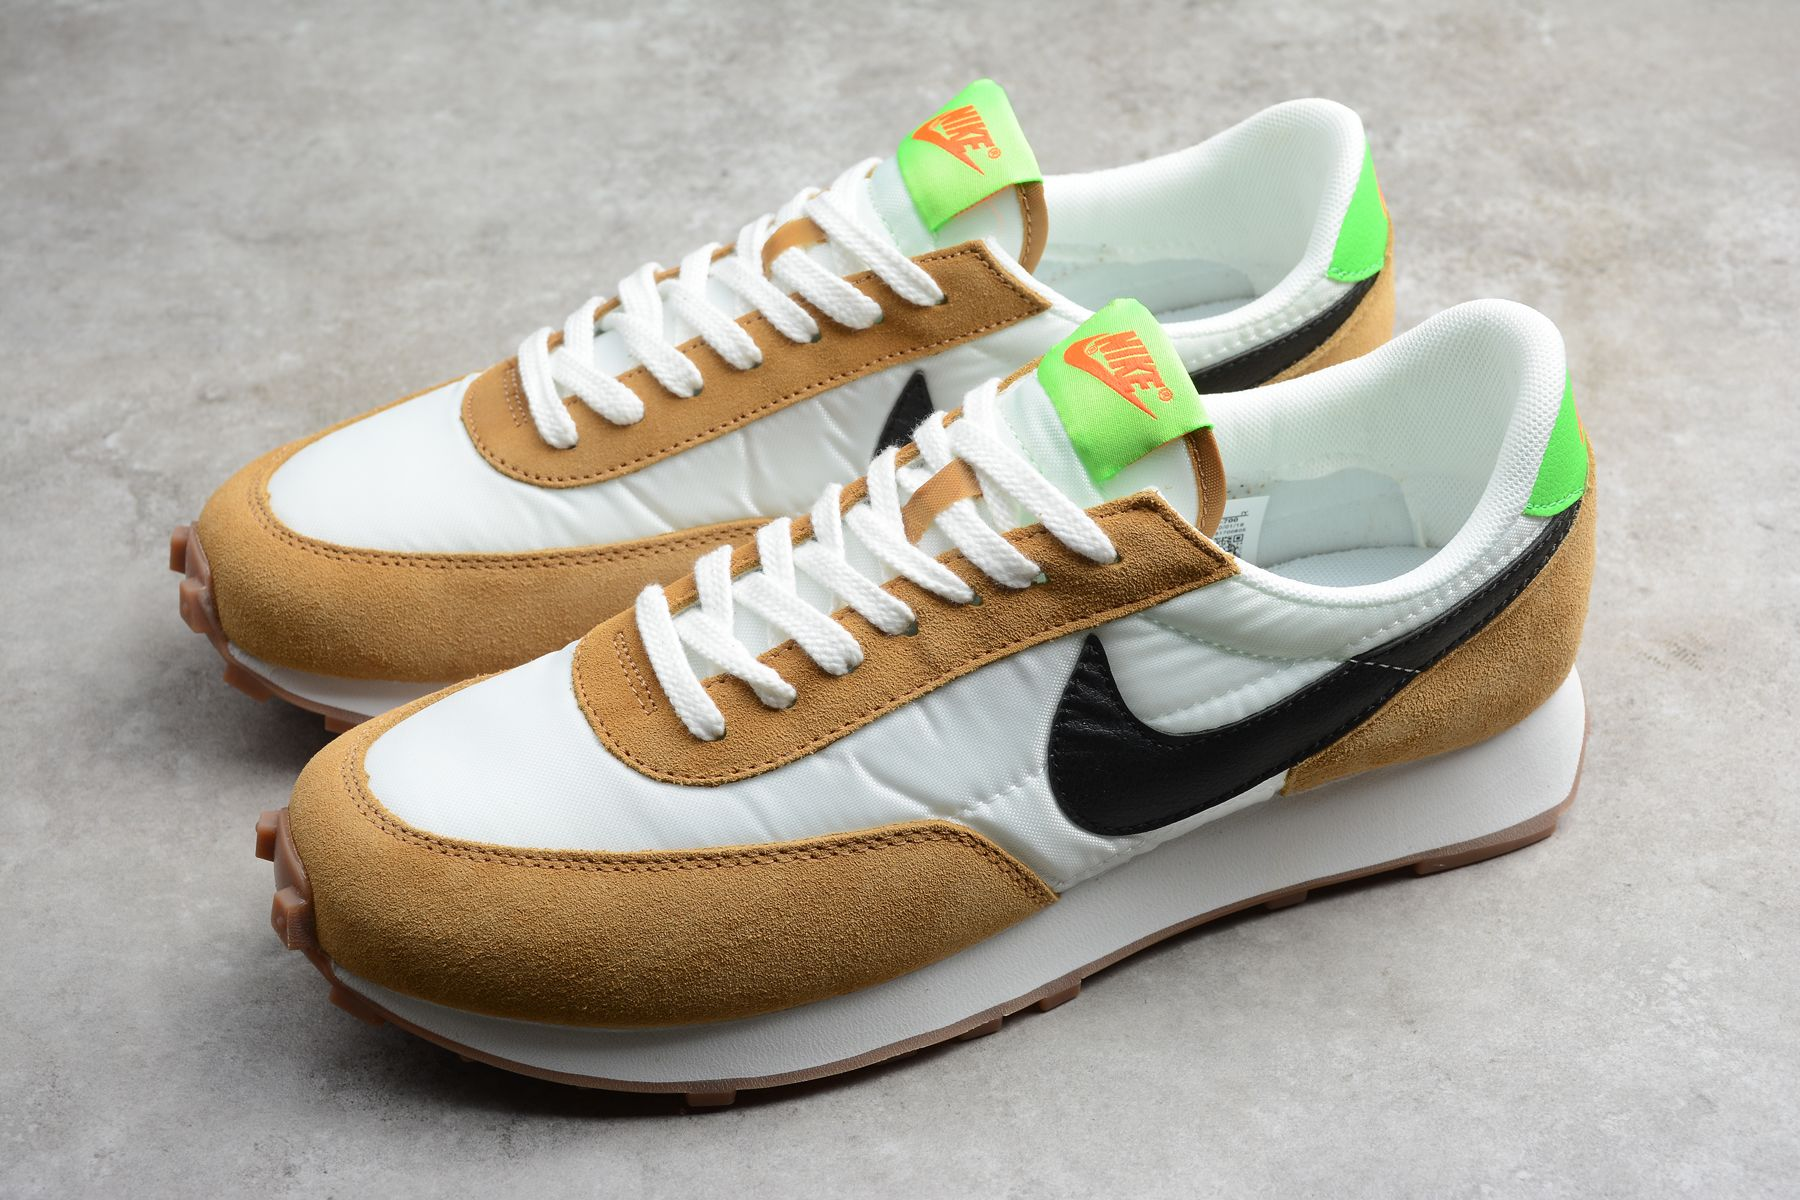 Nike Daybreak Casual Shoes Leather Nylon Suede